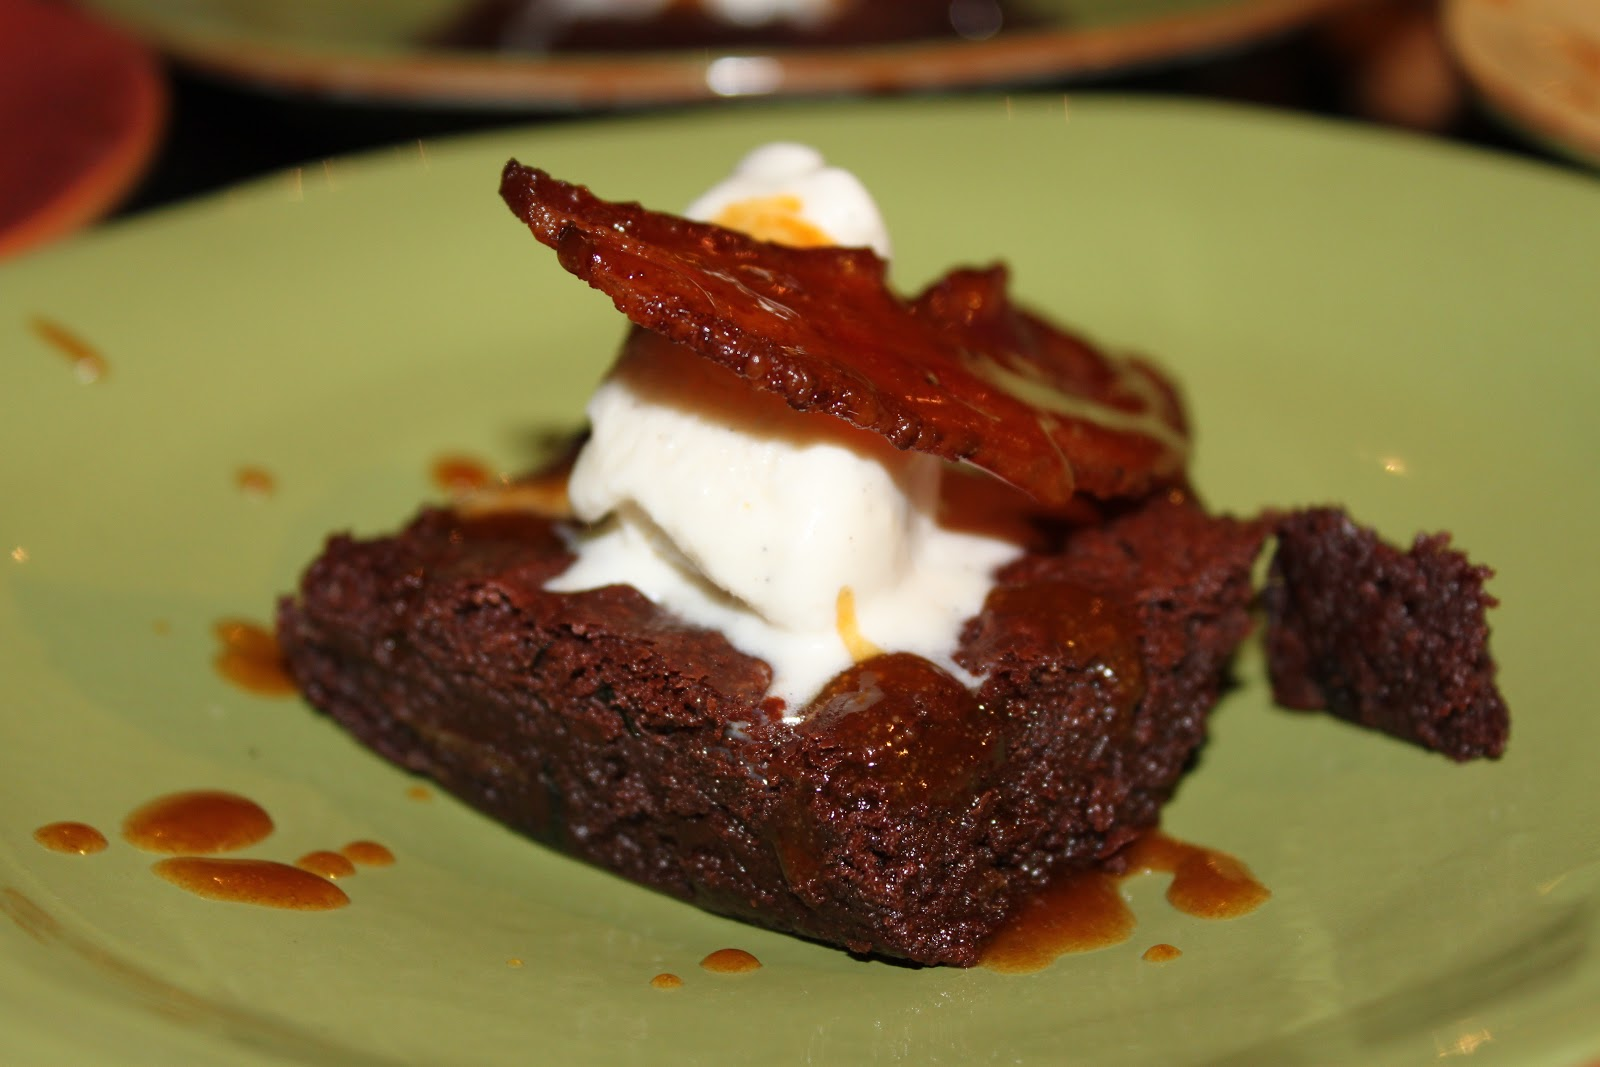 ... Denny's Baconalia with Bacon Brownies with Bourbon Caramel Sauce